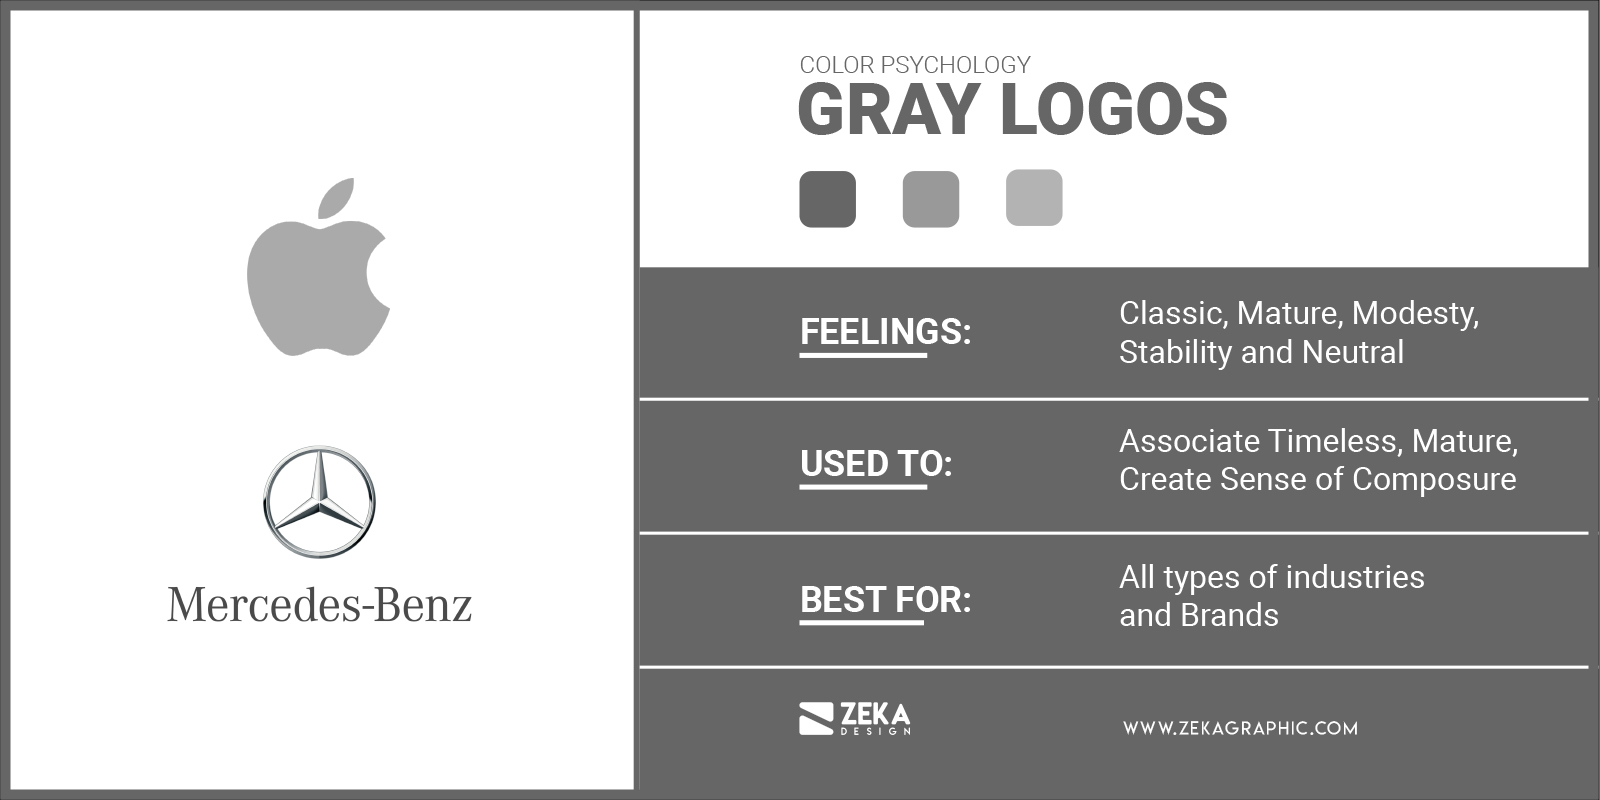 Gray Logos Meaning in Graphic Design